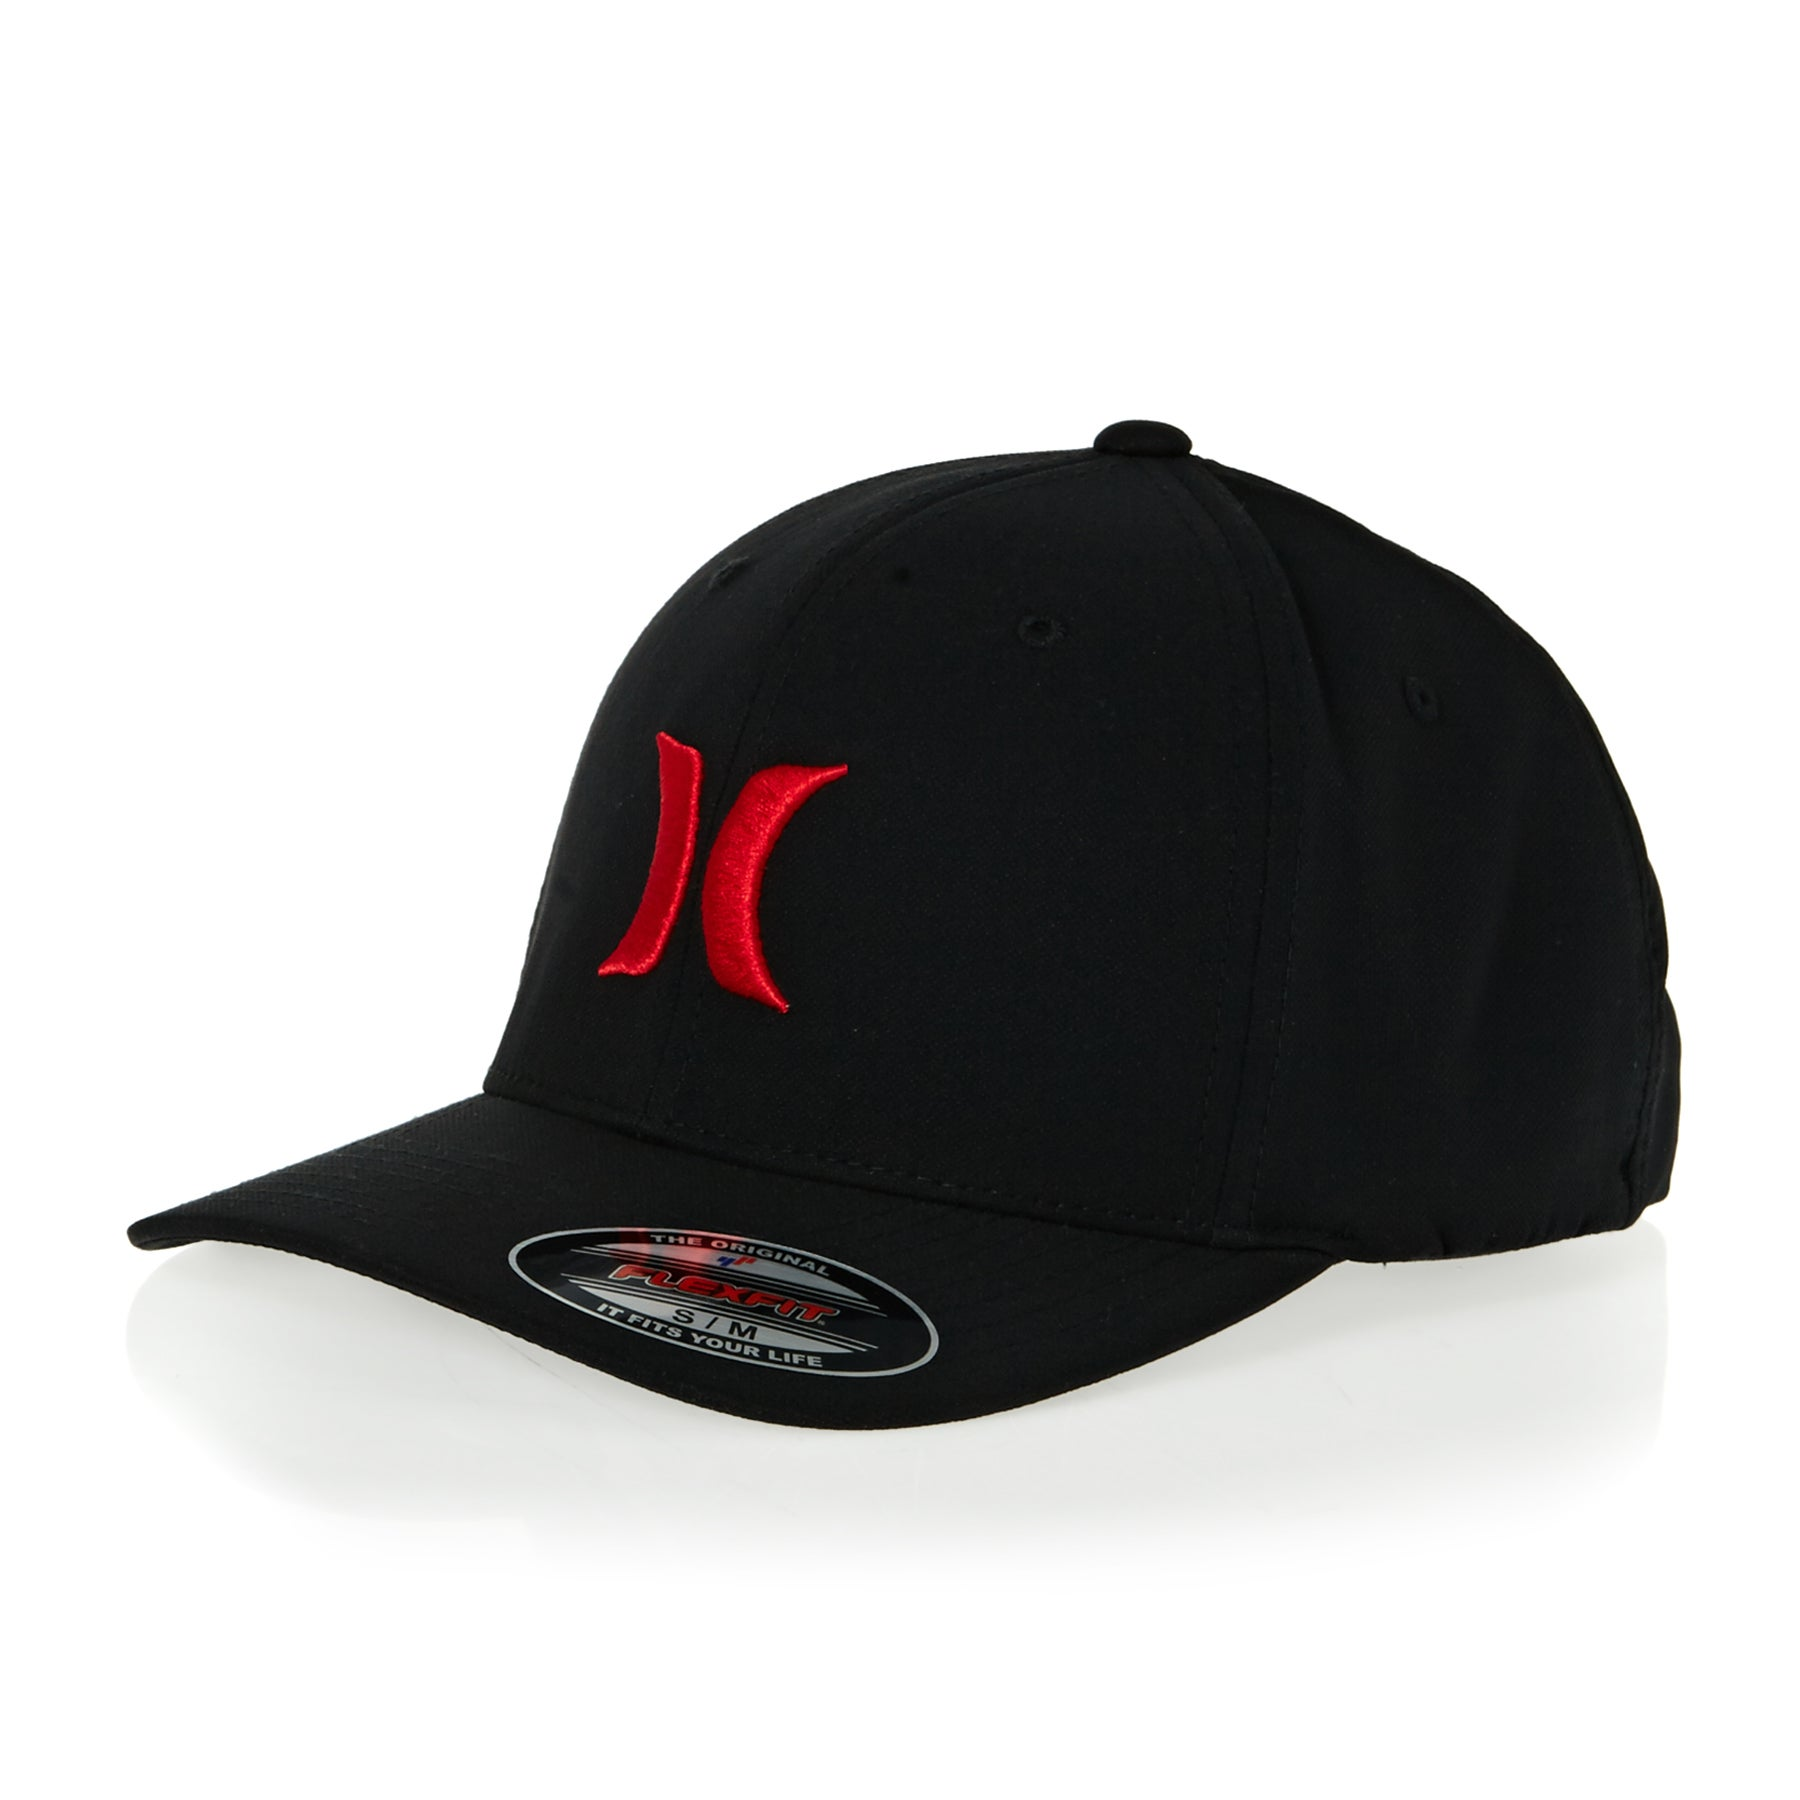 d110d3ae5de4c Hurley Dri-fit One and Only 2.0 Cap